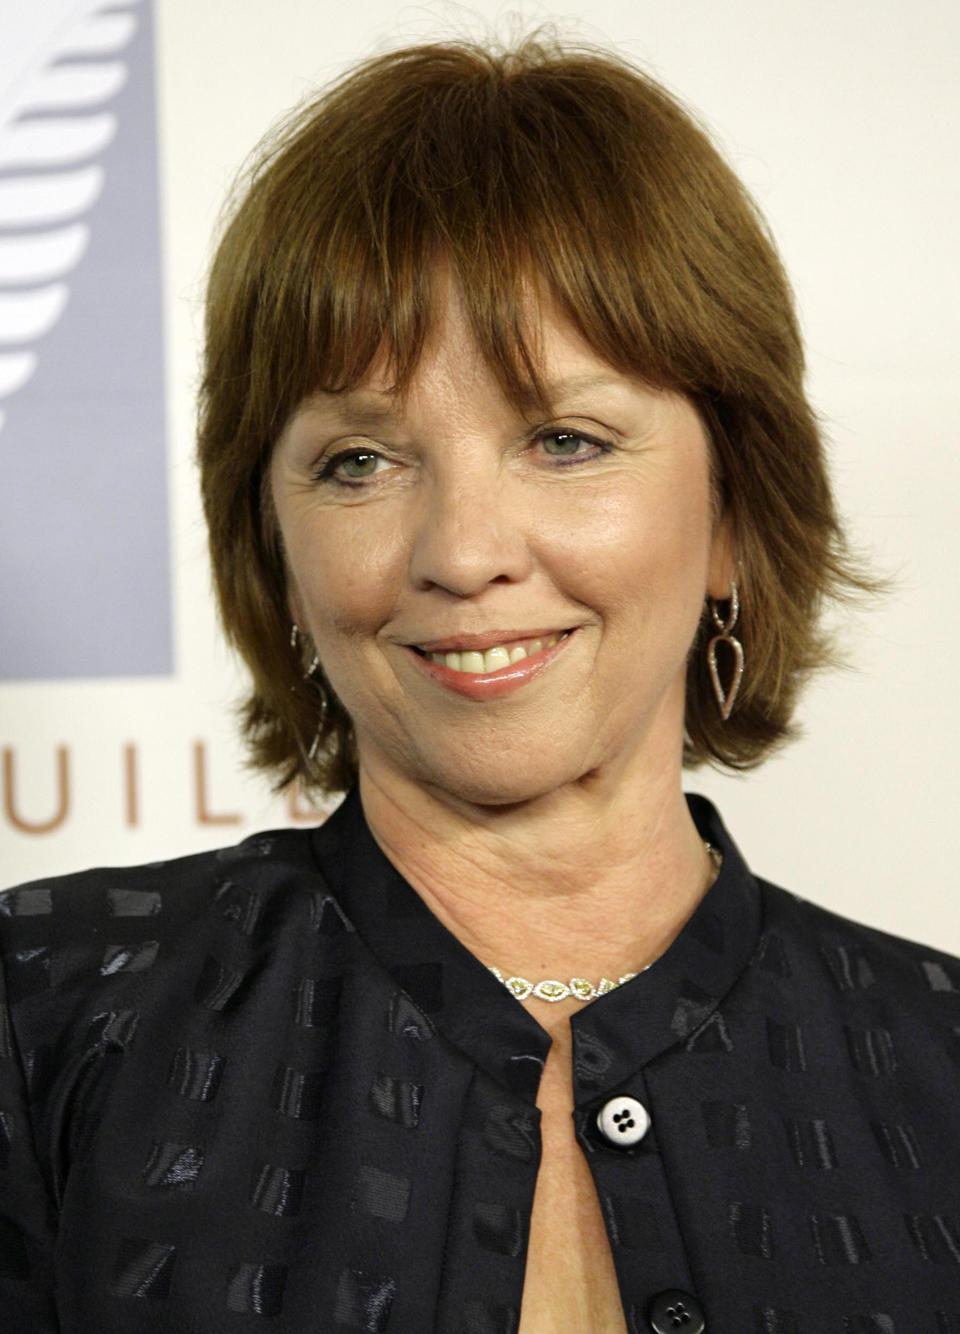 Romance Author Nora Roberts Responds To Tomi Adeyemi Accusation: 'You Can't Copyright A Title'